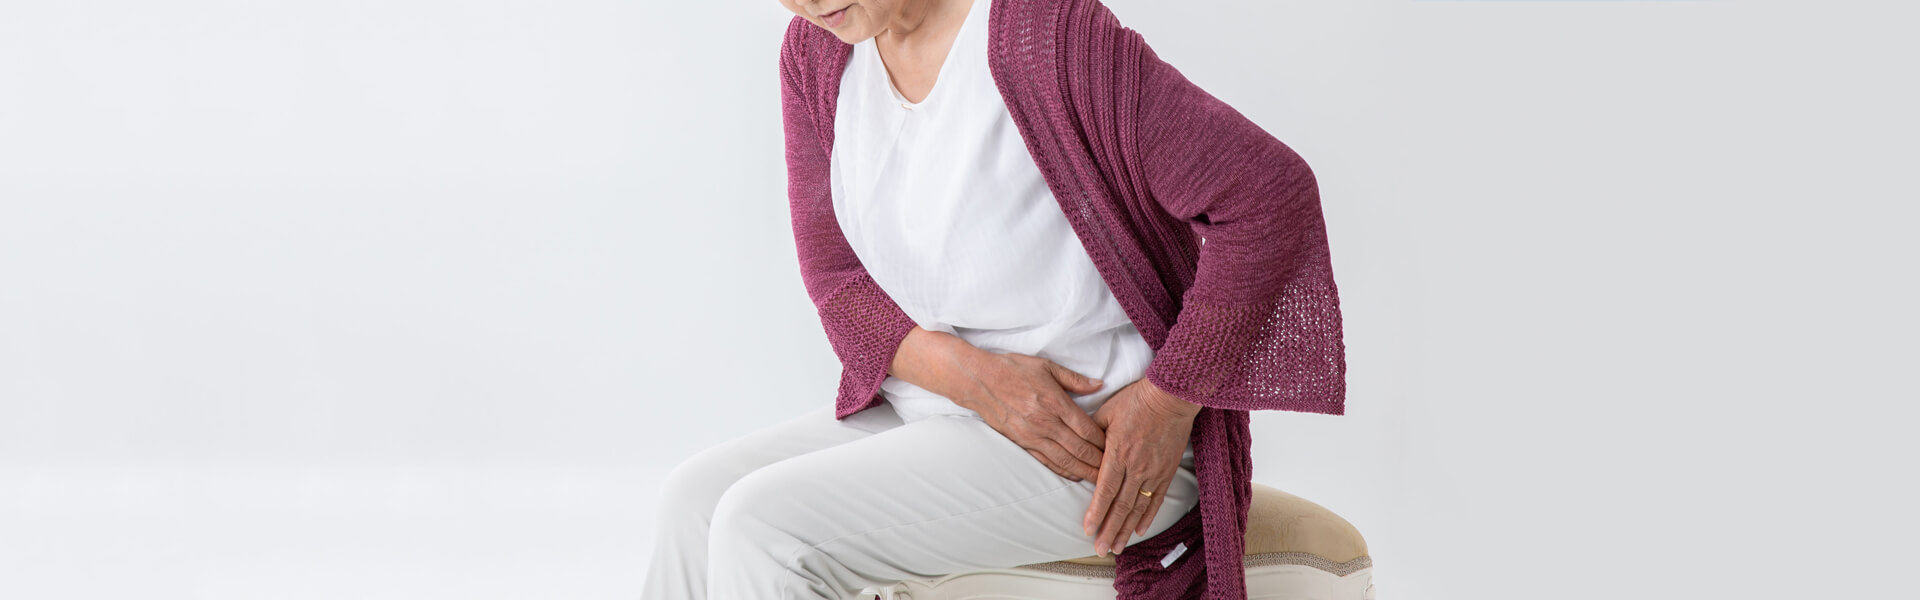 Knee Injections for Osteoarthritis Treatments